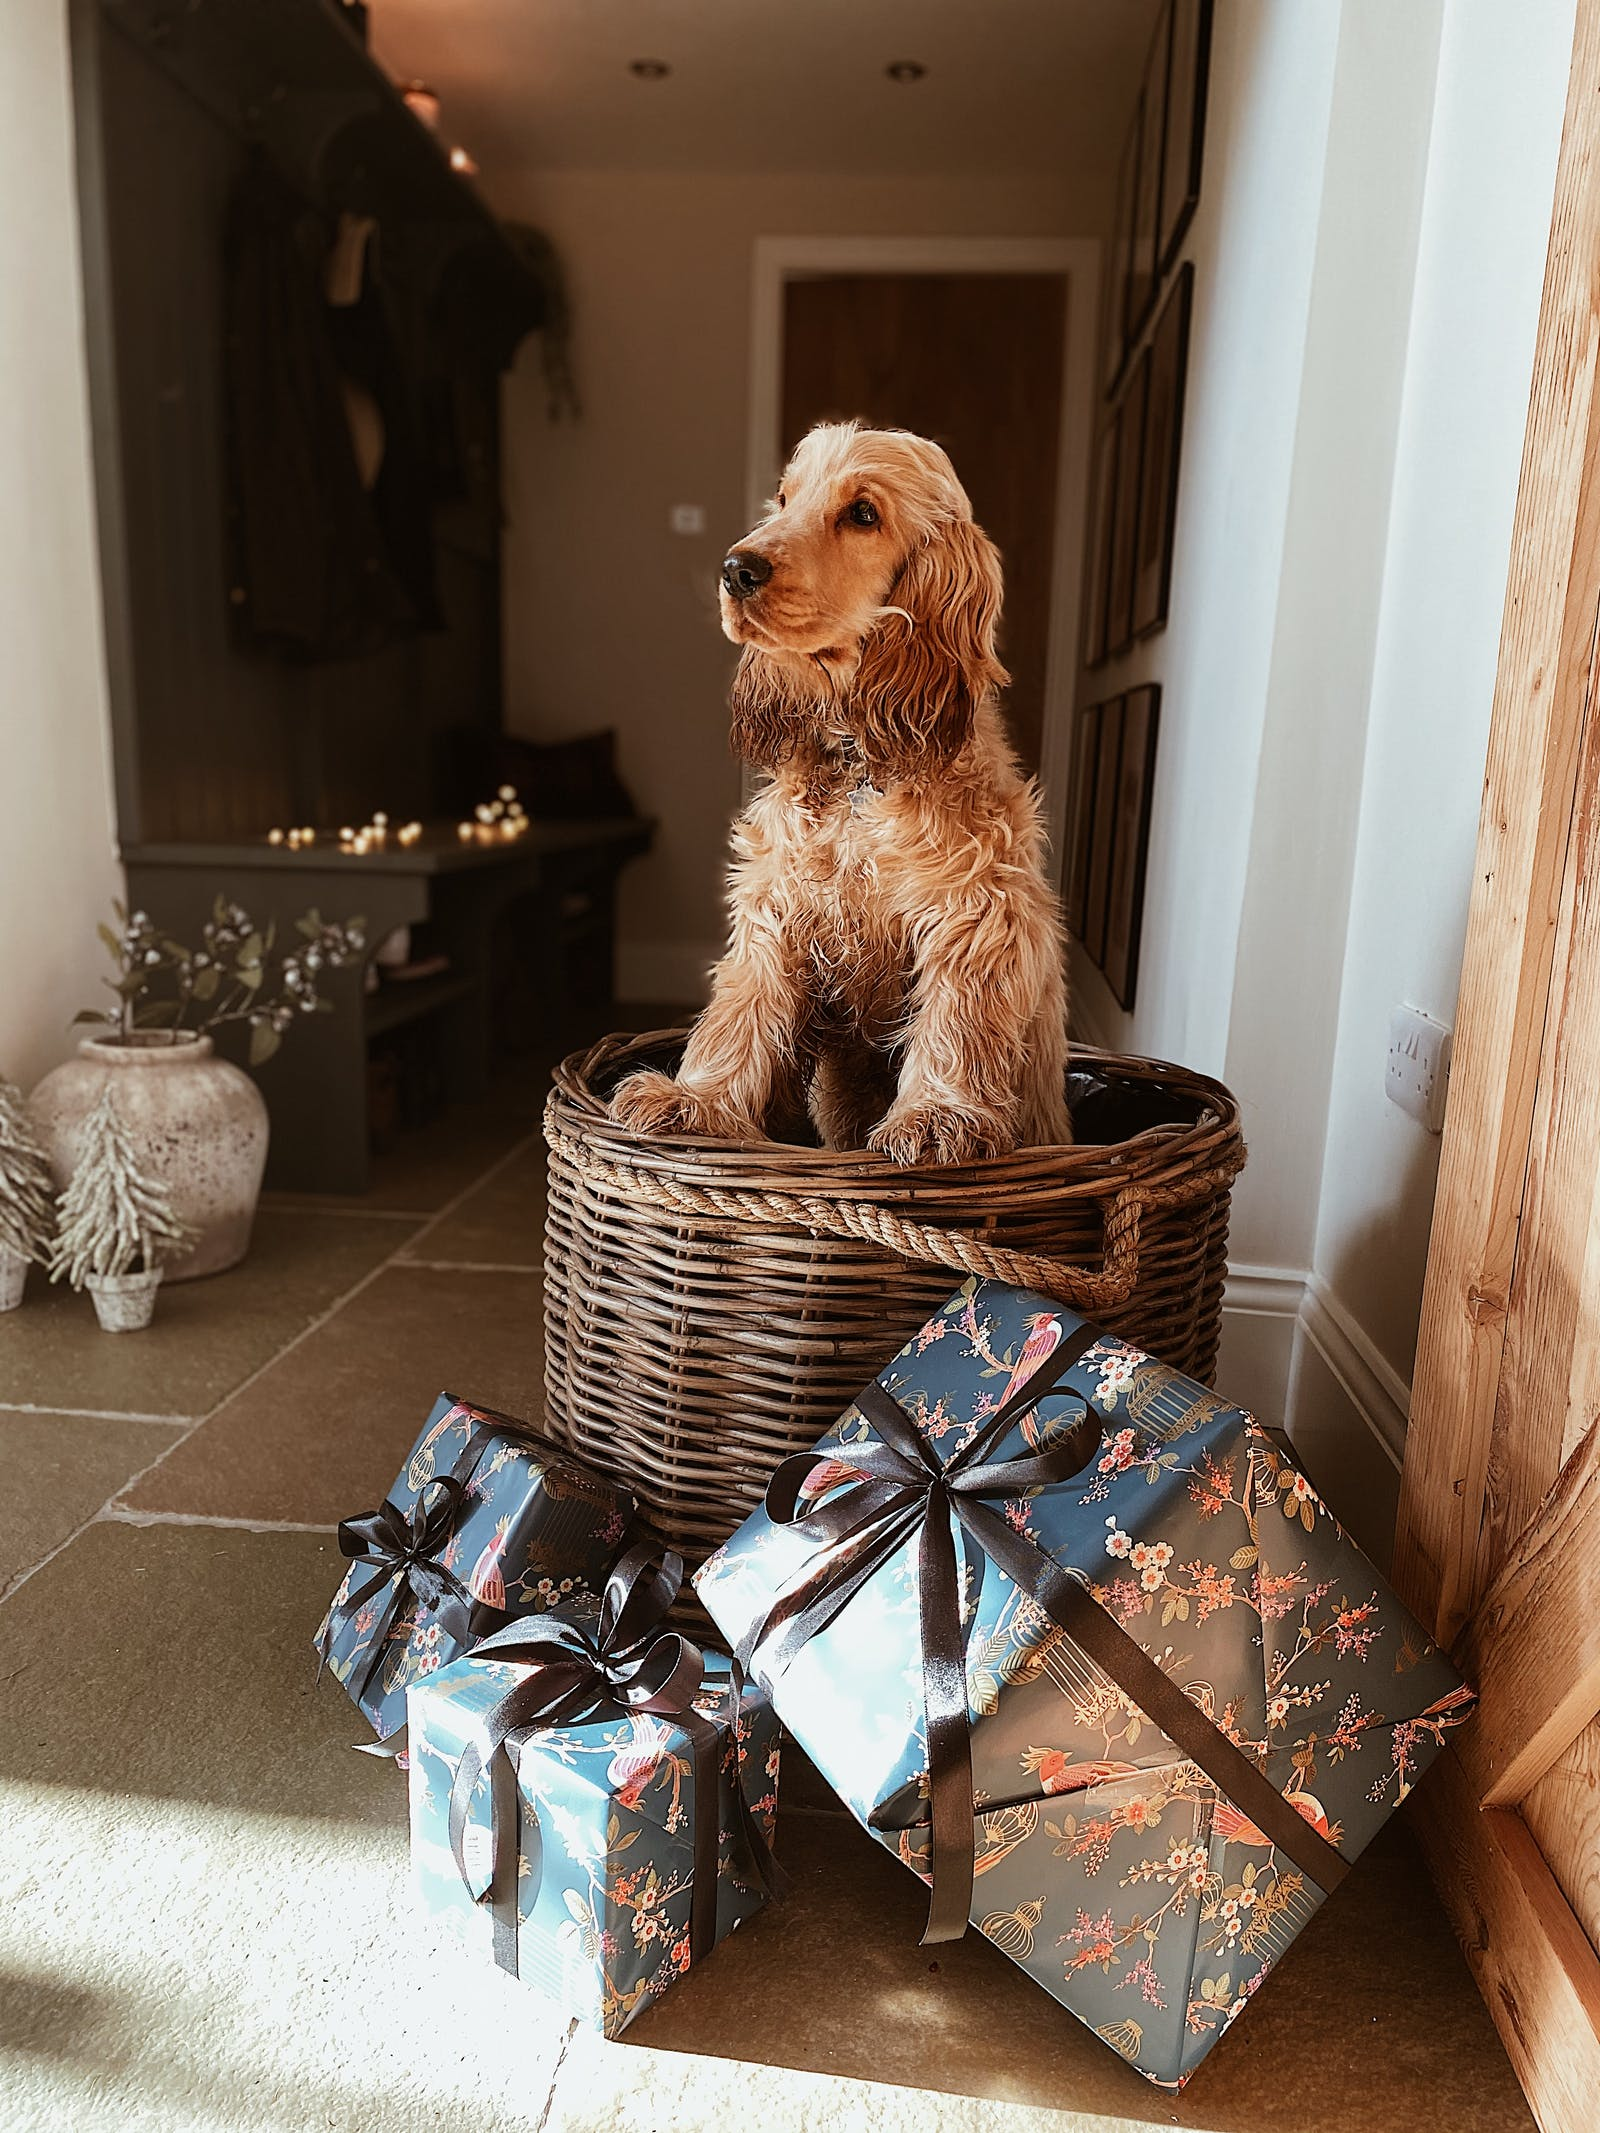 Dog sitting in basket surrounded by gifts in a hallway